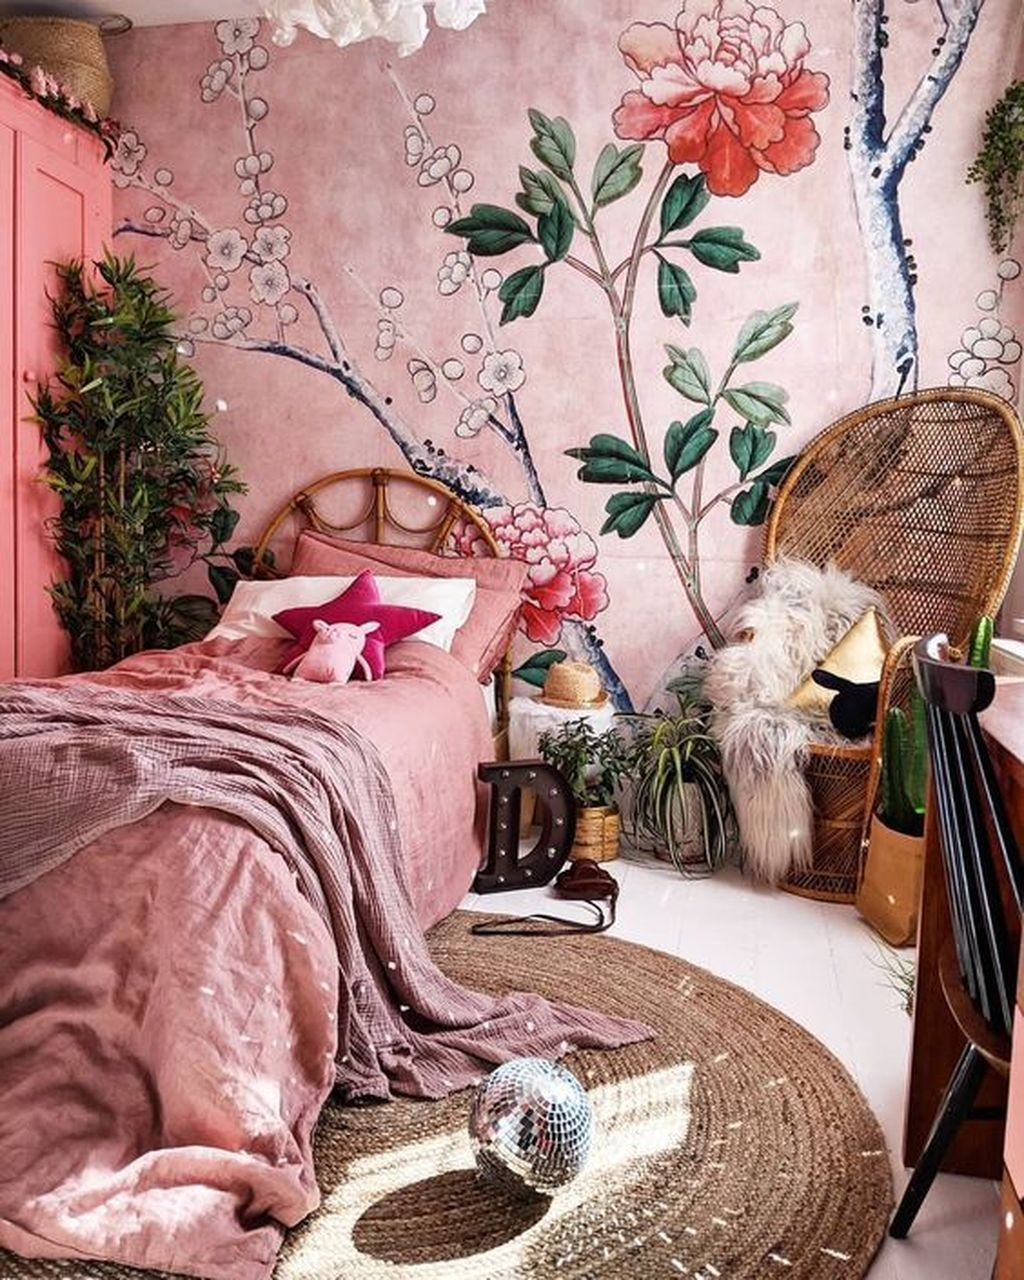 12 Lovely Bohemian Bedroom Decor Ideas You Have To See  Bohemian